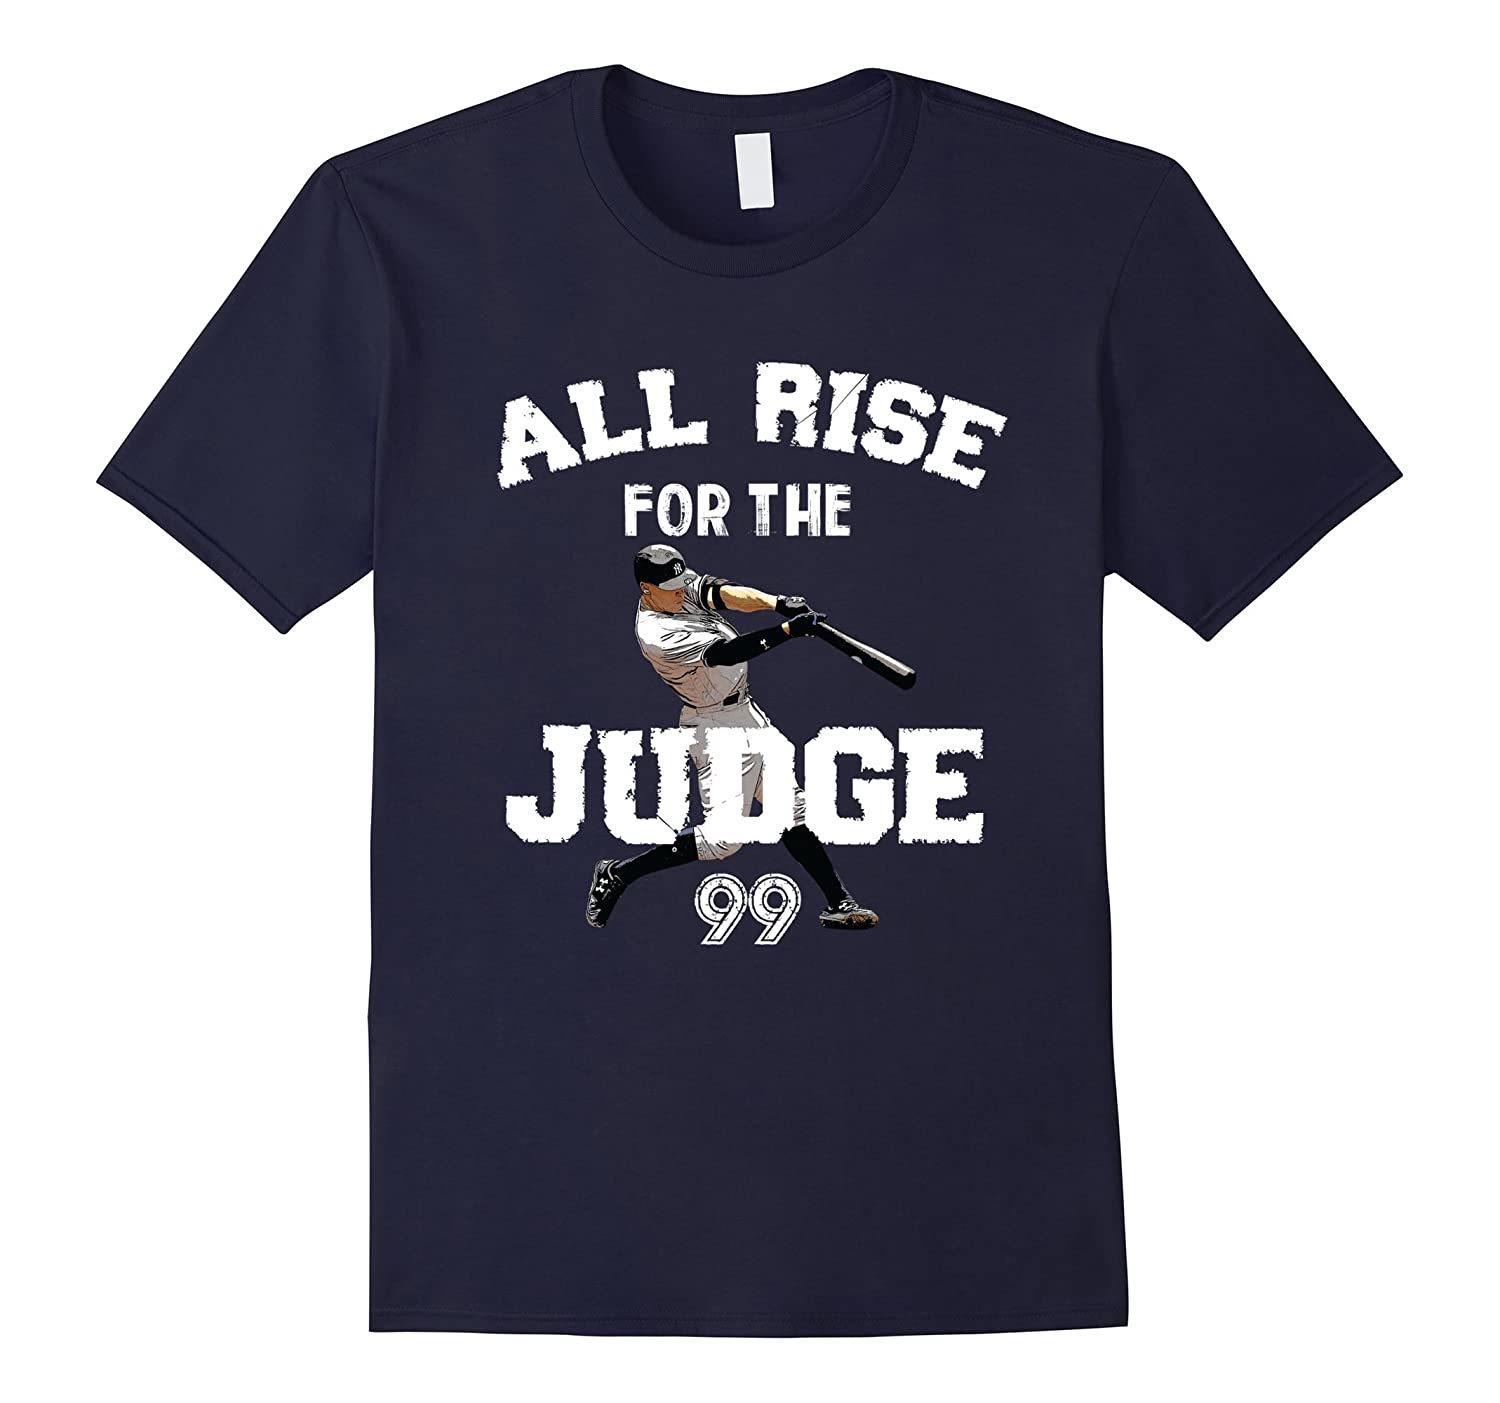 All rise aaron for the Judge 99 Shirt illustration Graphic-PL